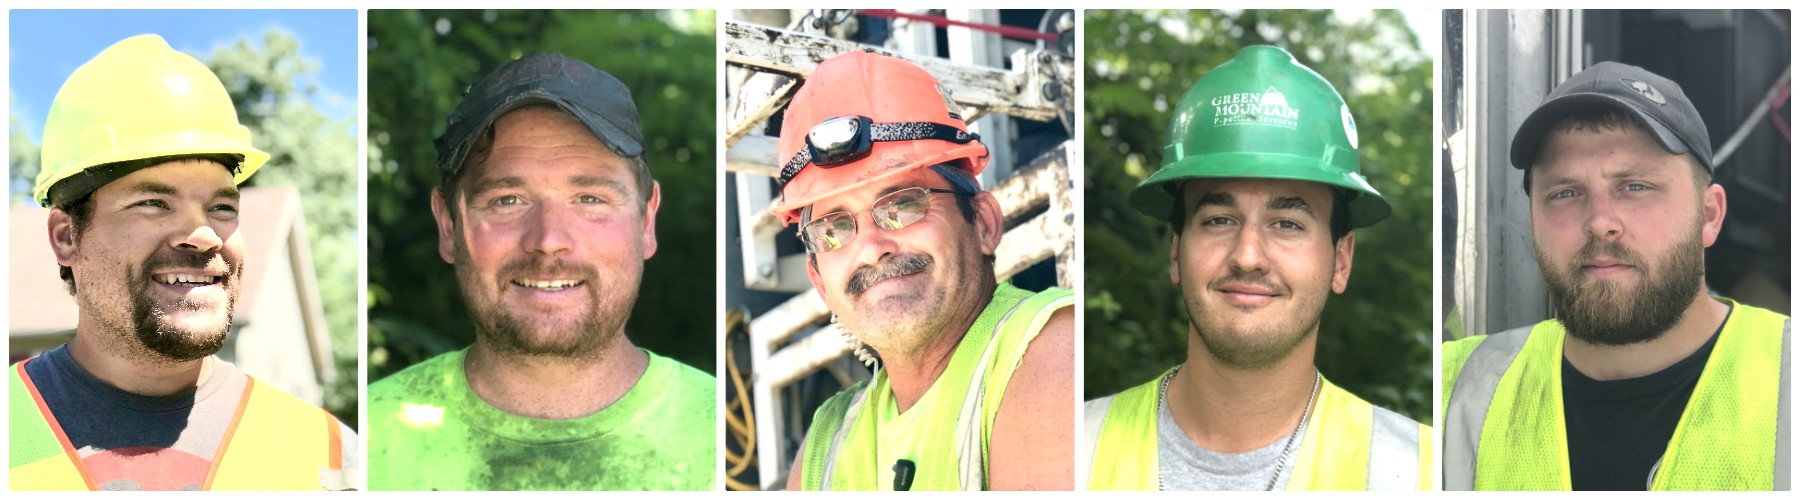 Faces of Mr Rehab + Green Mtn Pipeline Services